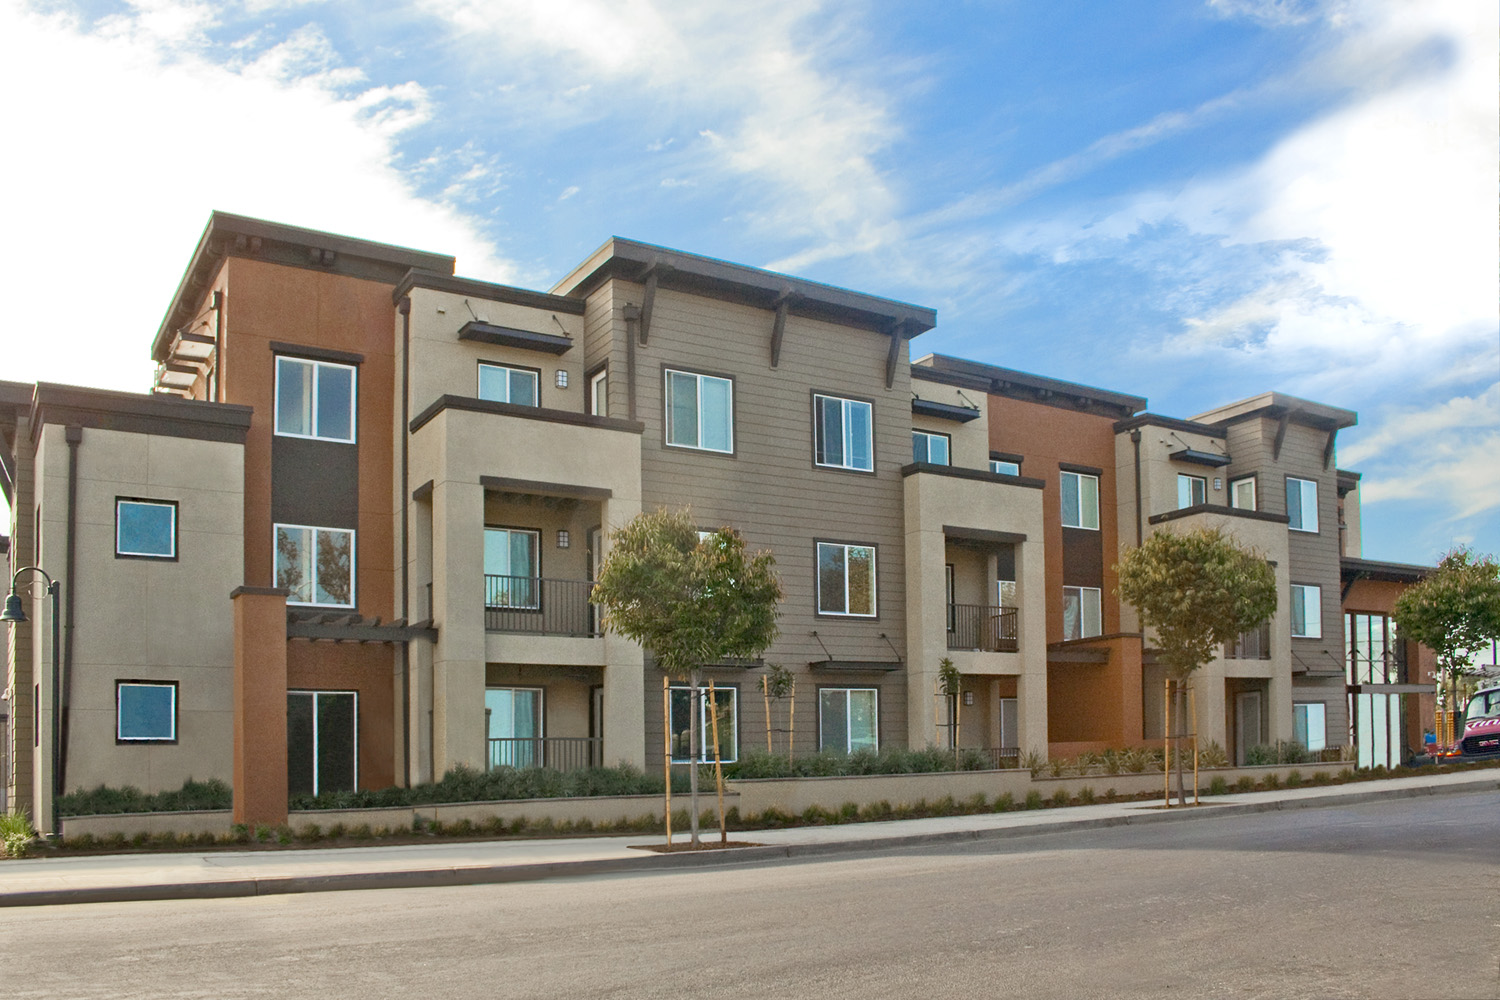 Ktgy designed green affordable family apartments opens in san jose by ktgy group - Houses family children modern economical ...